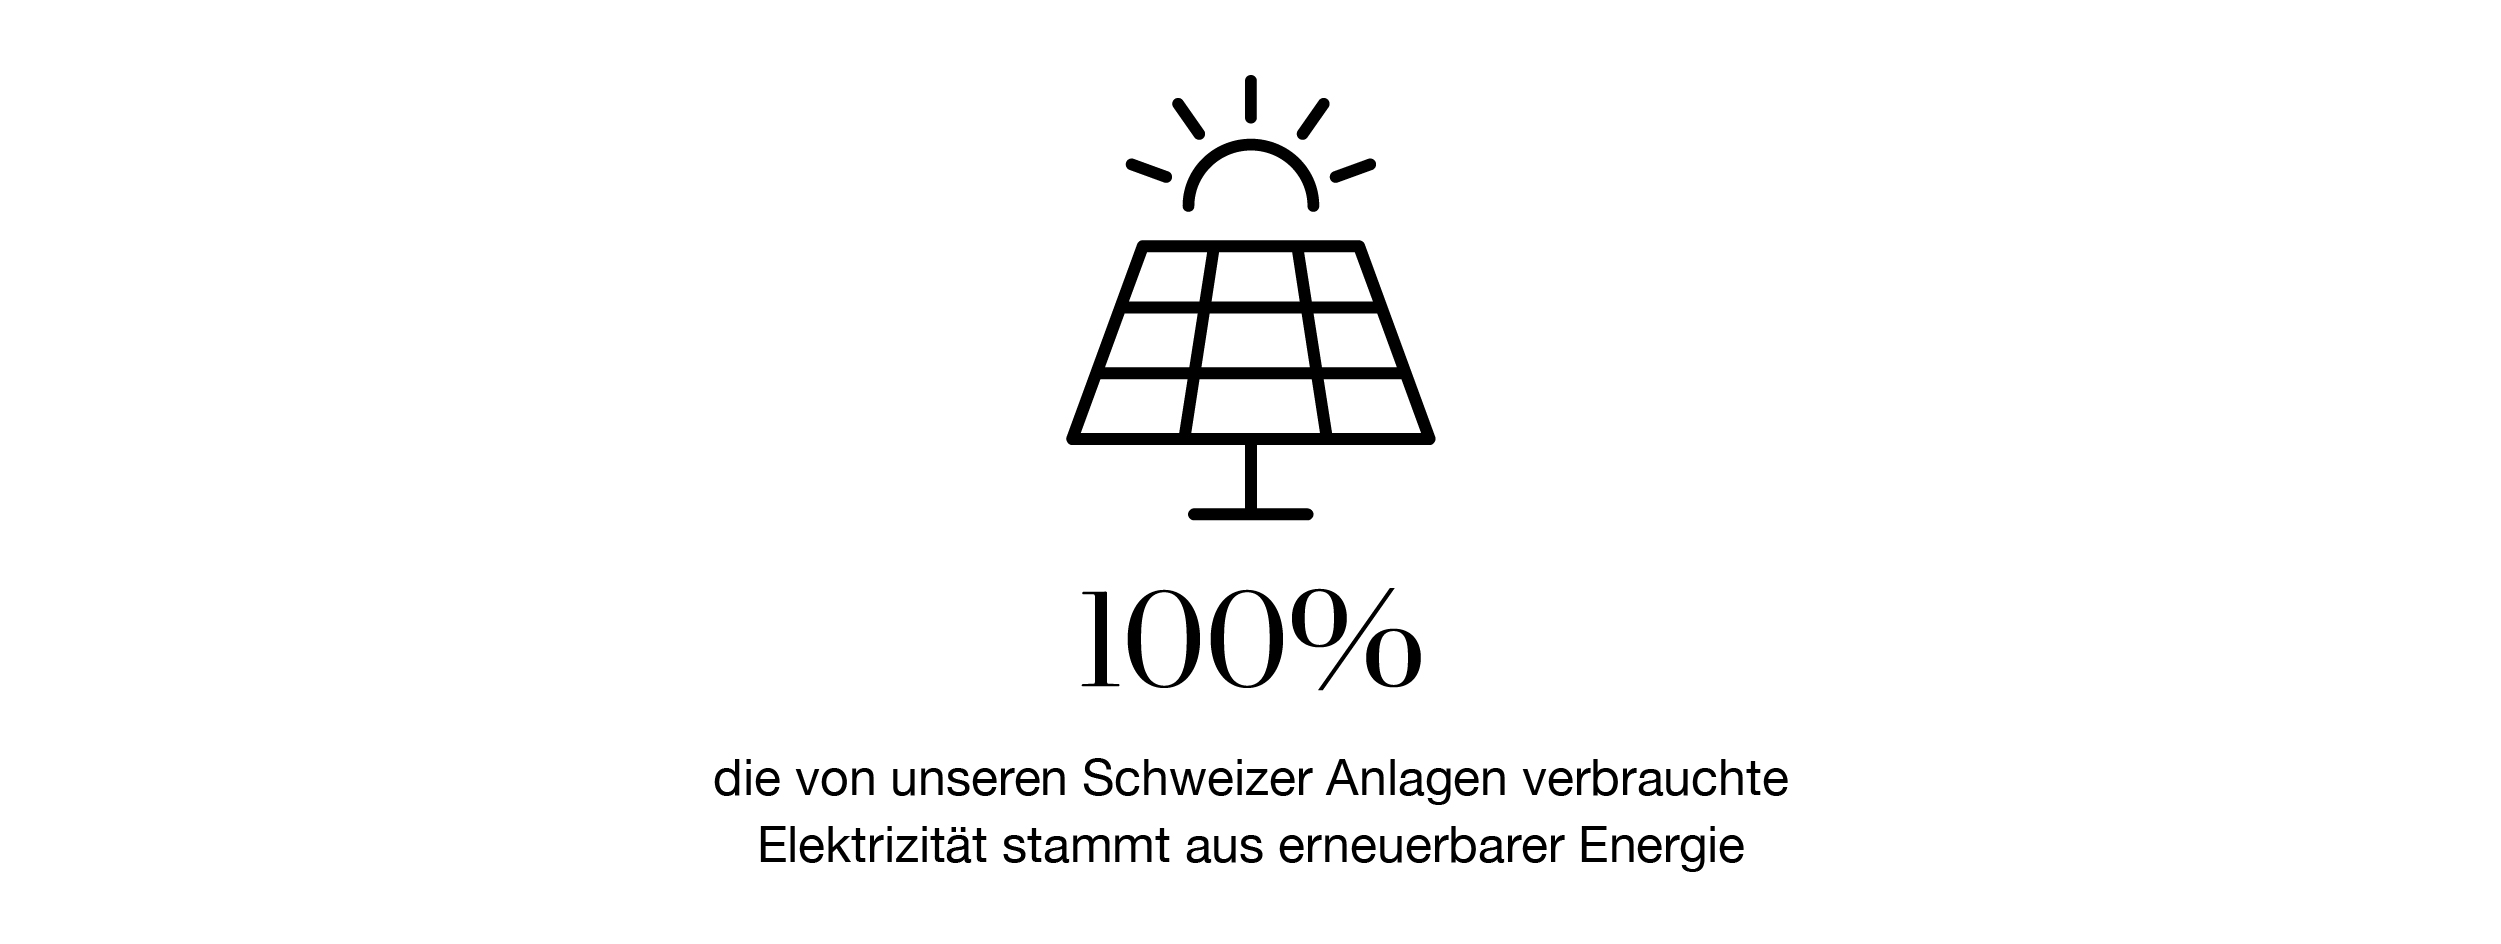 icon showing rate of renewable energy